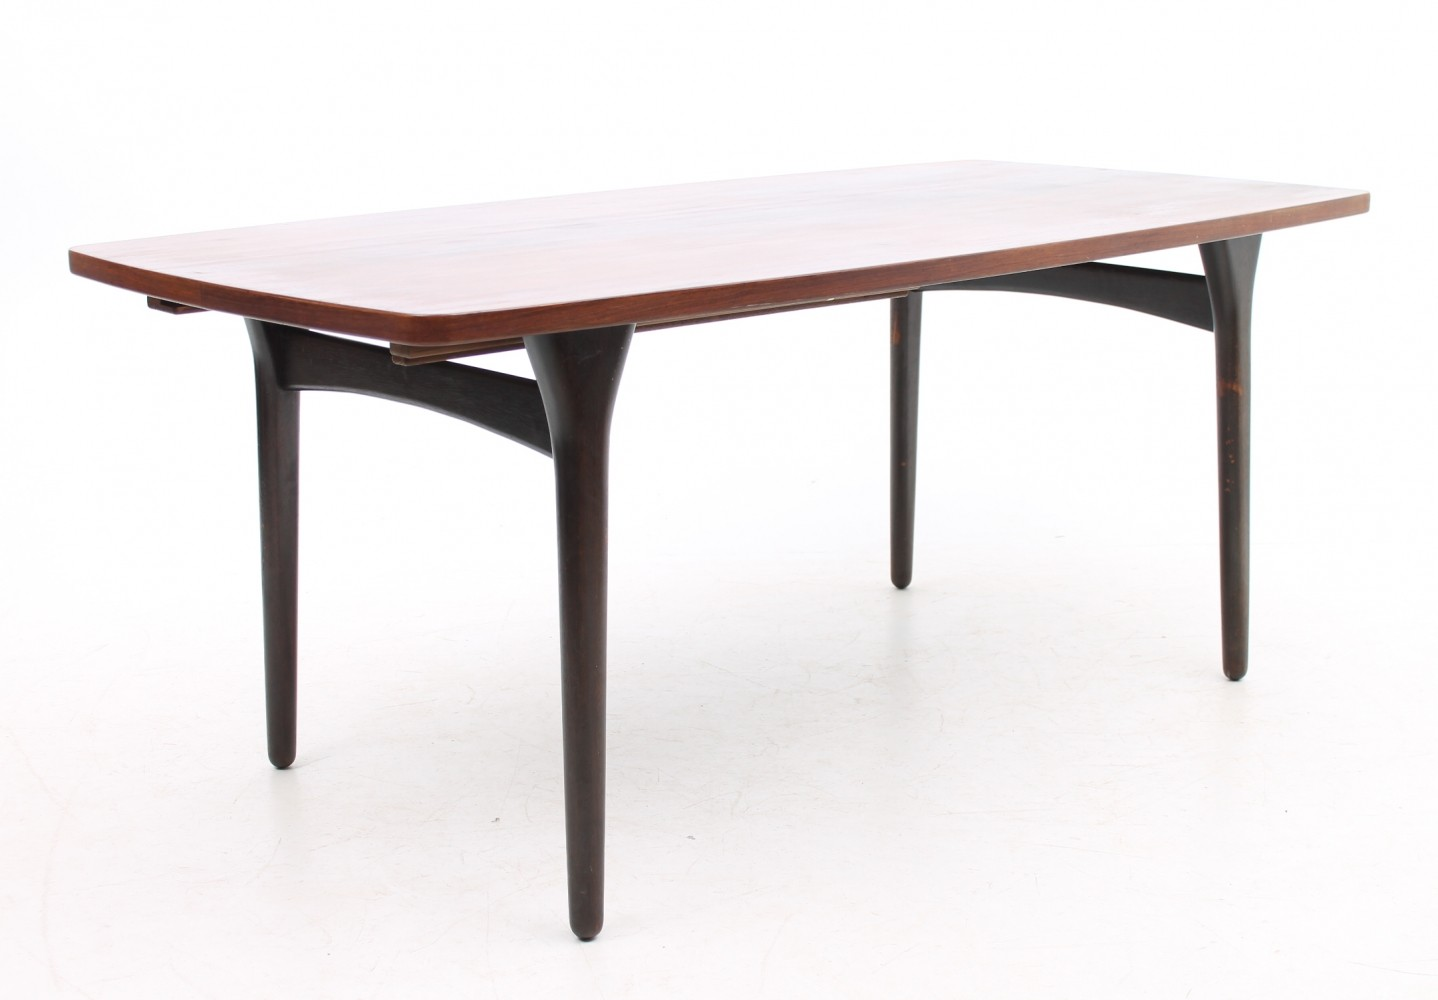 Extension model dining table by Bruno Hansen, 1960s